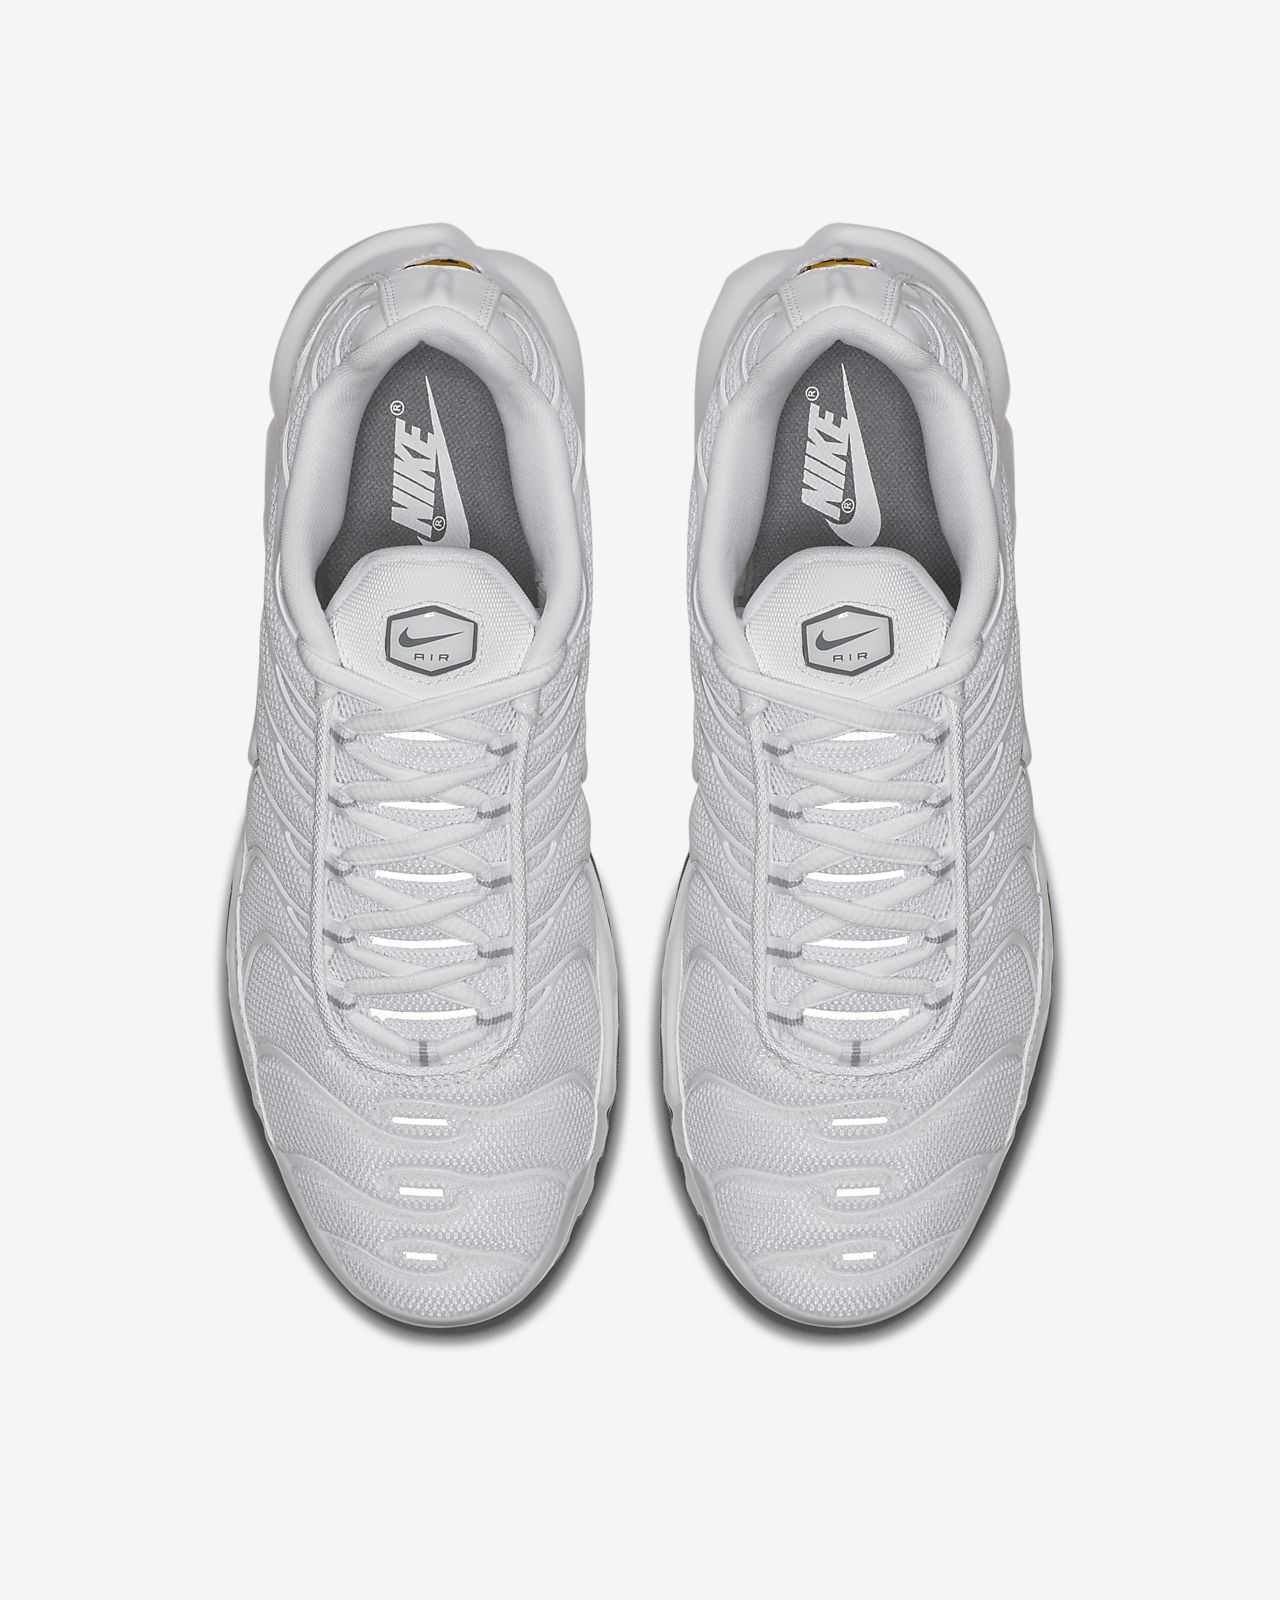 7365a282e3 Nike Air Max Plus Men's Shoe. Nike.com IE